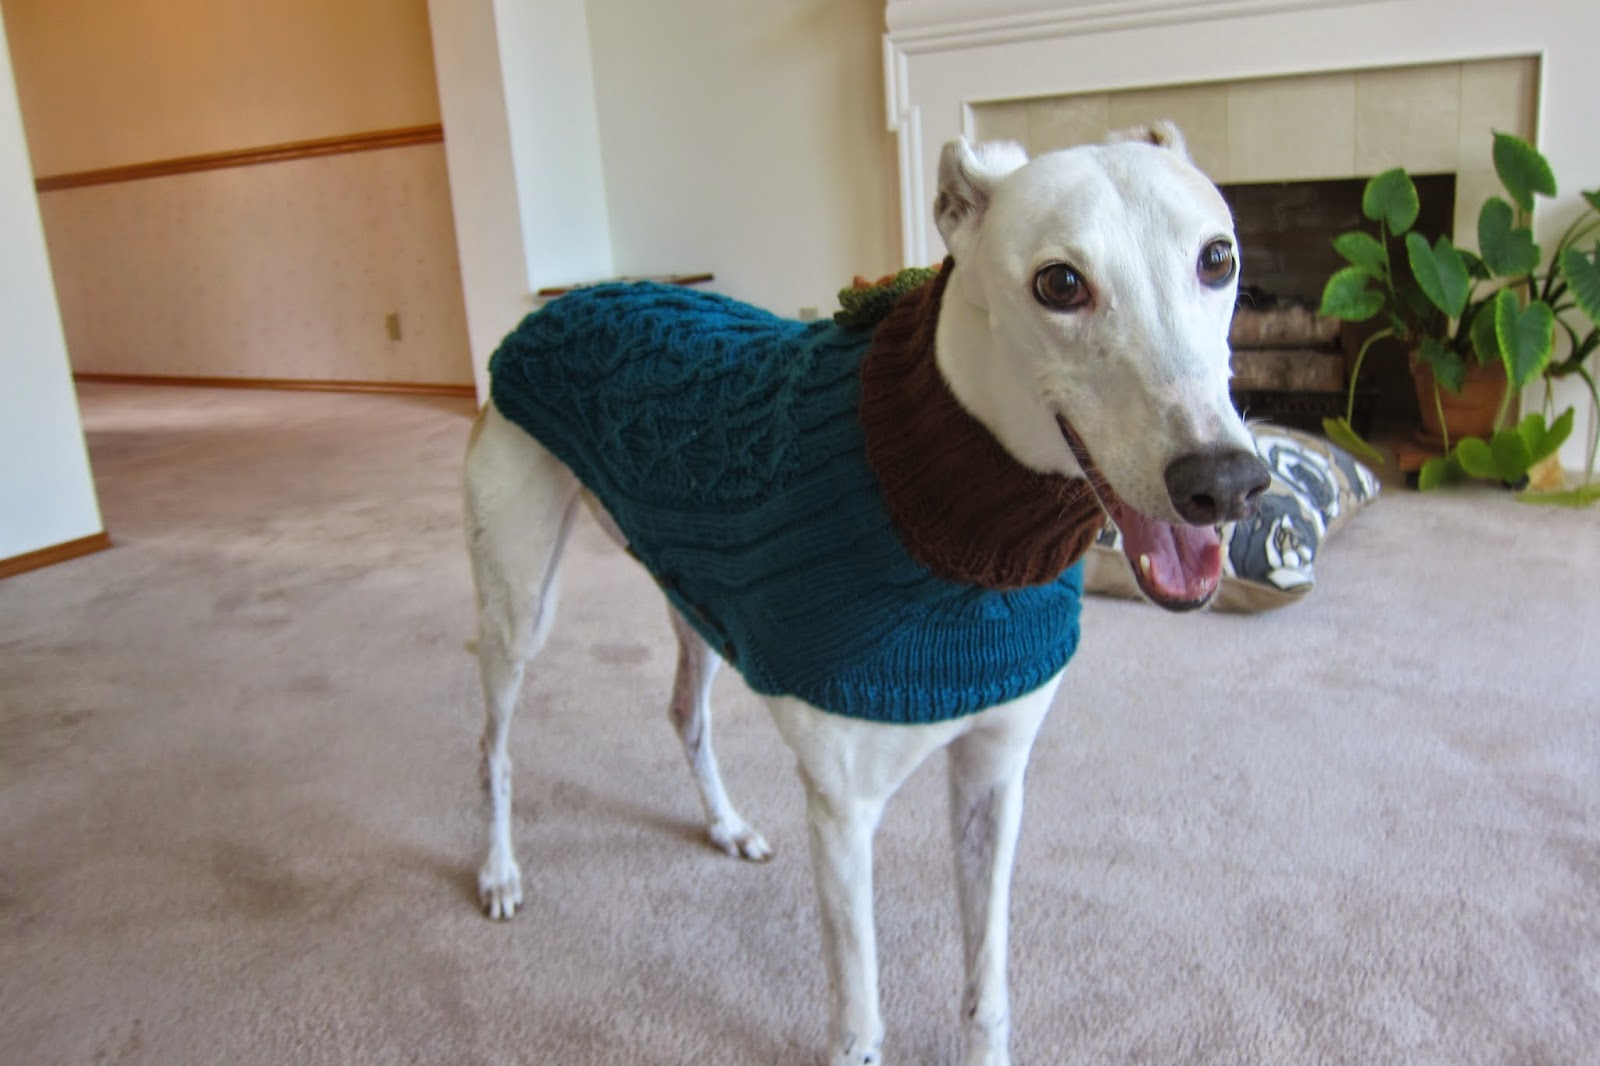 Knitting Patterns For Greyhound Dogs : Greyhound Knit Sweaters: Blue green sweater for a girl dog